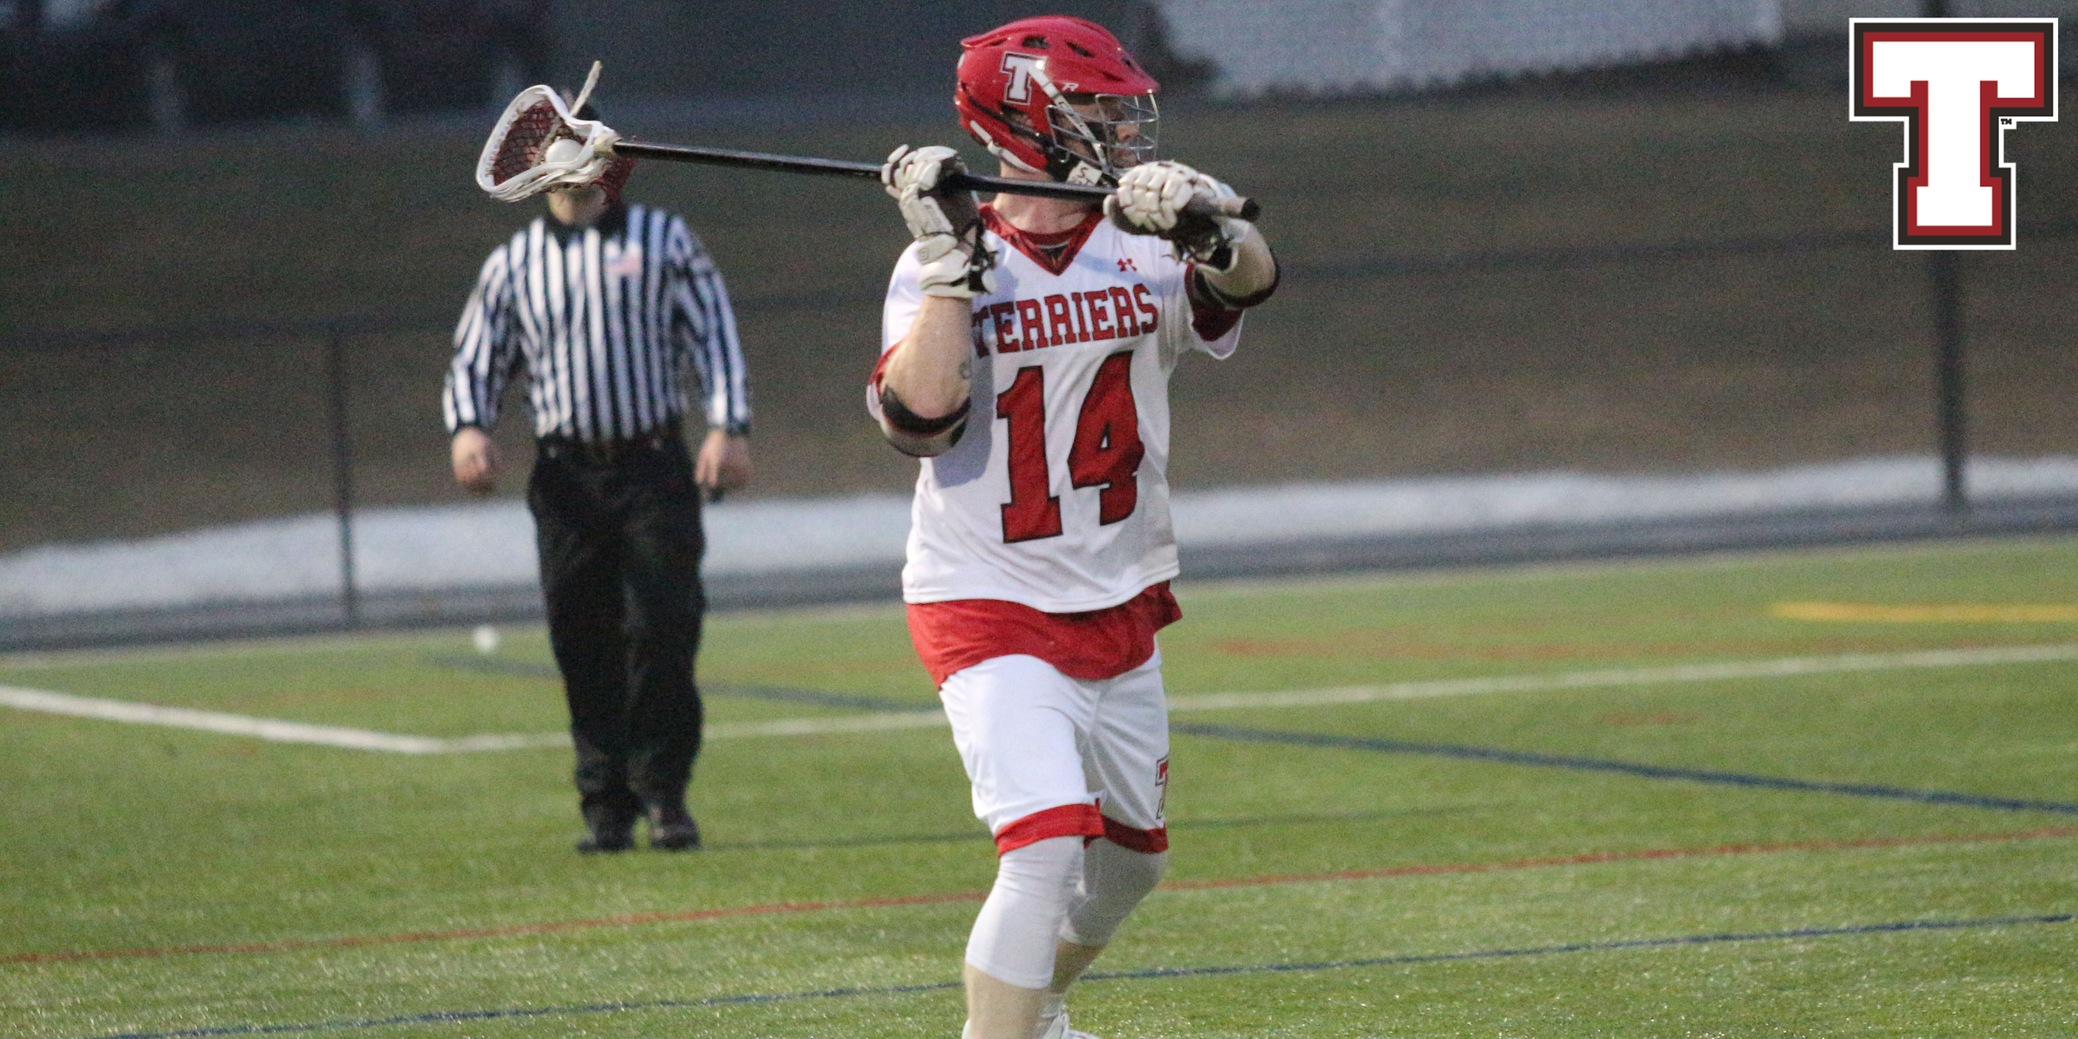 Men's Lacrosse Bows Out of NAC Playoffs With Loss at Lyndon